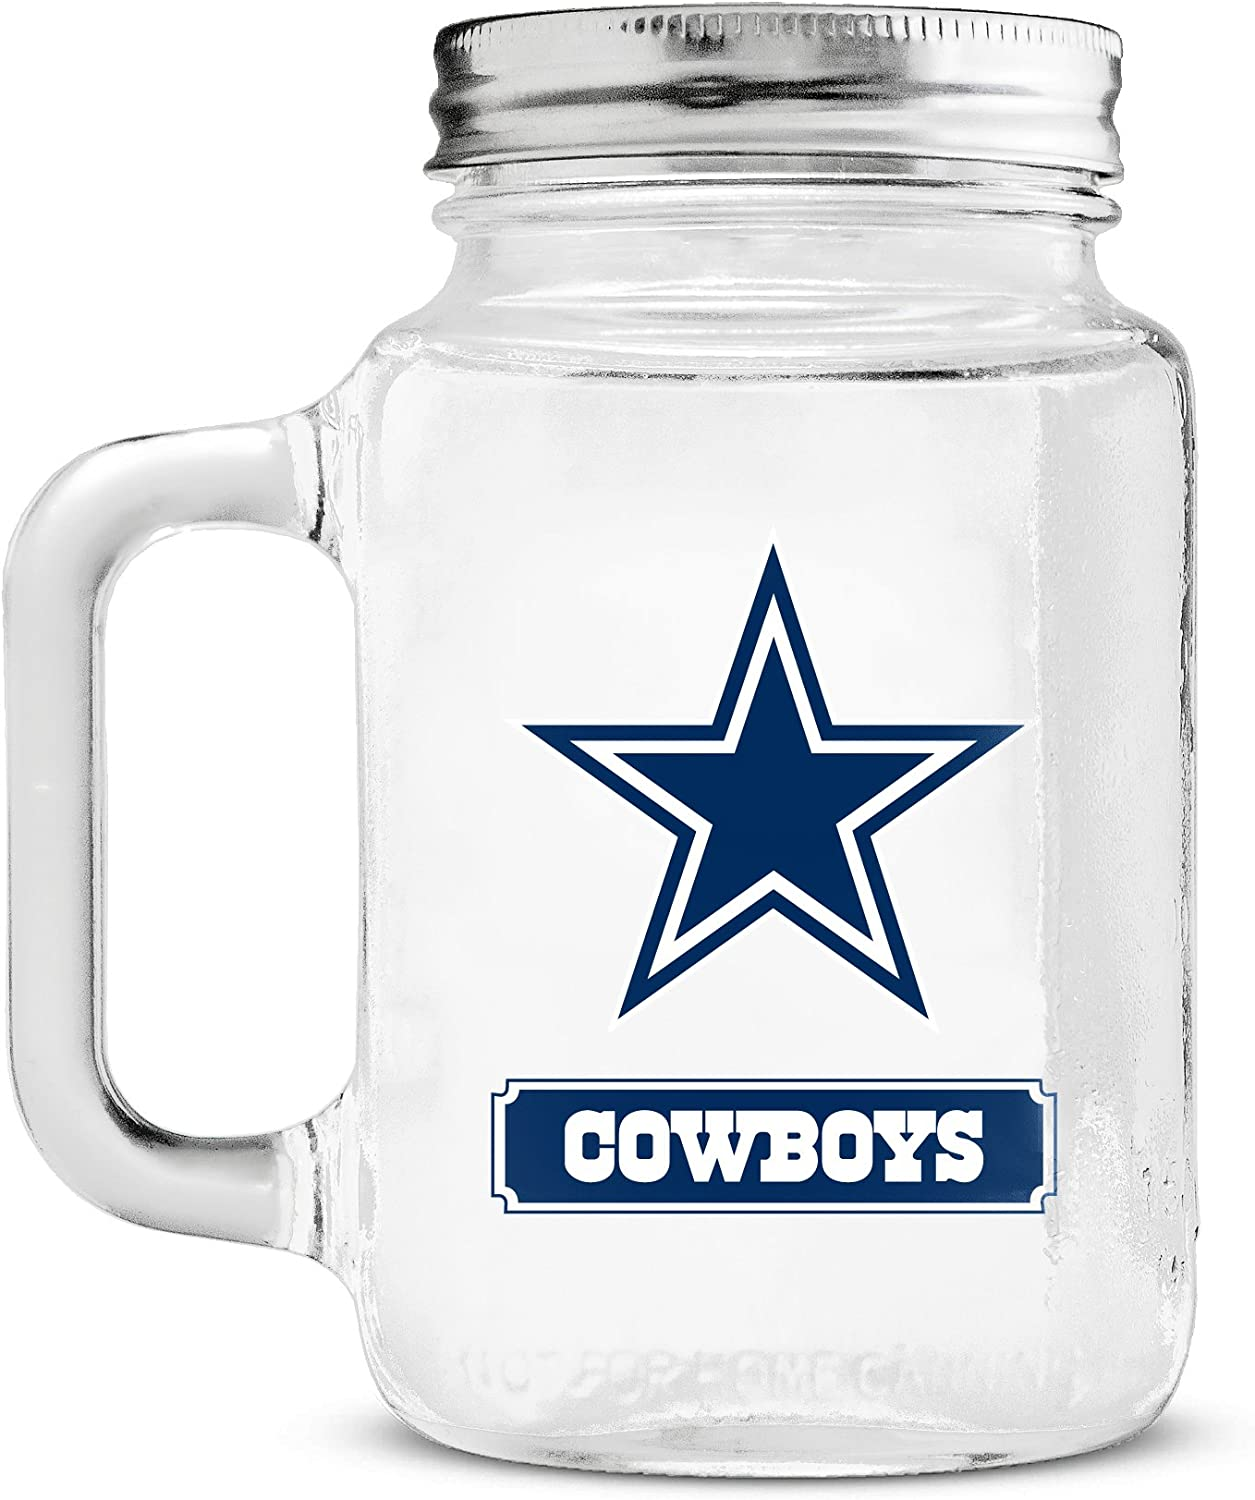 Duck House NFL Fan Shop NFL Glass Mason Jar with Handle   Great for Drinking Beverages   Stainless Steel Lid   Food Storage   BPA-Free